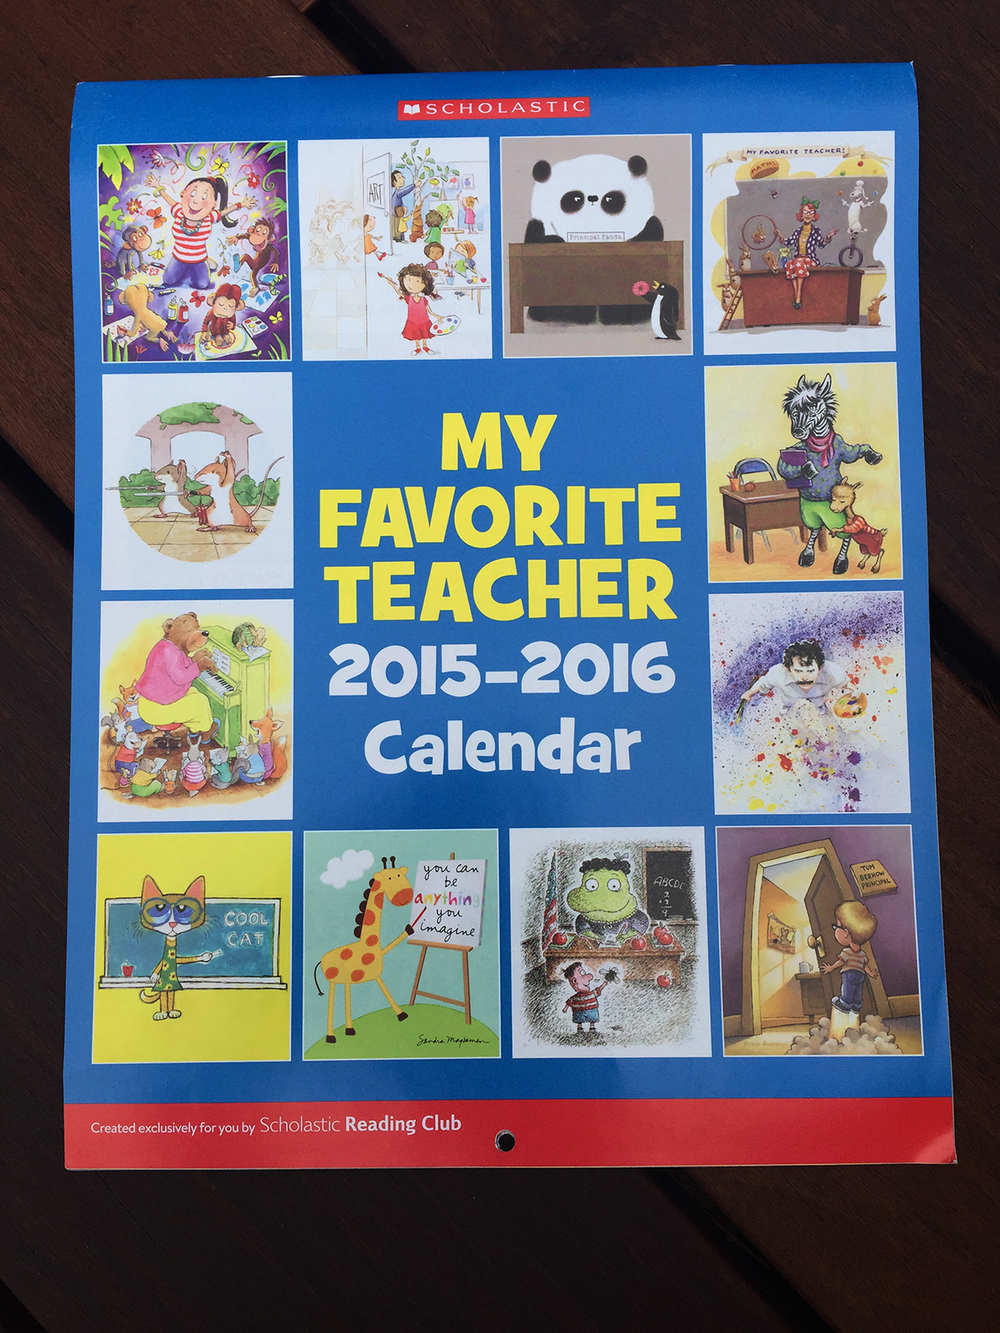 Scholastic Reading Club Calendar